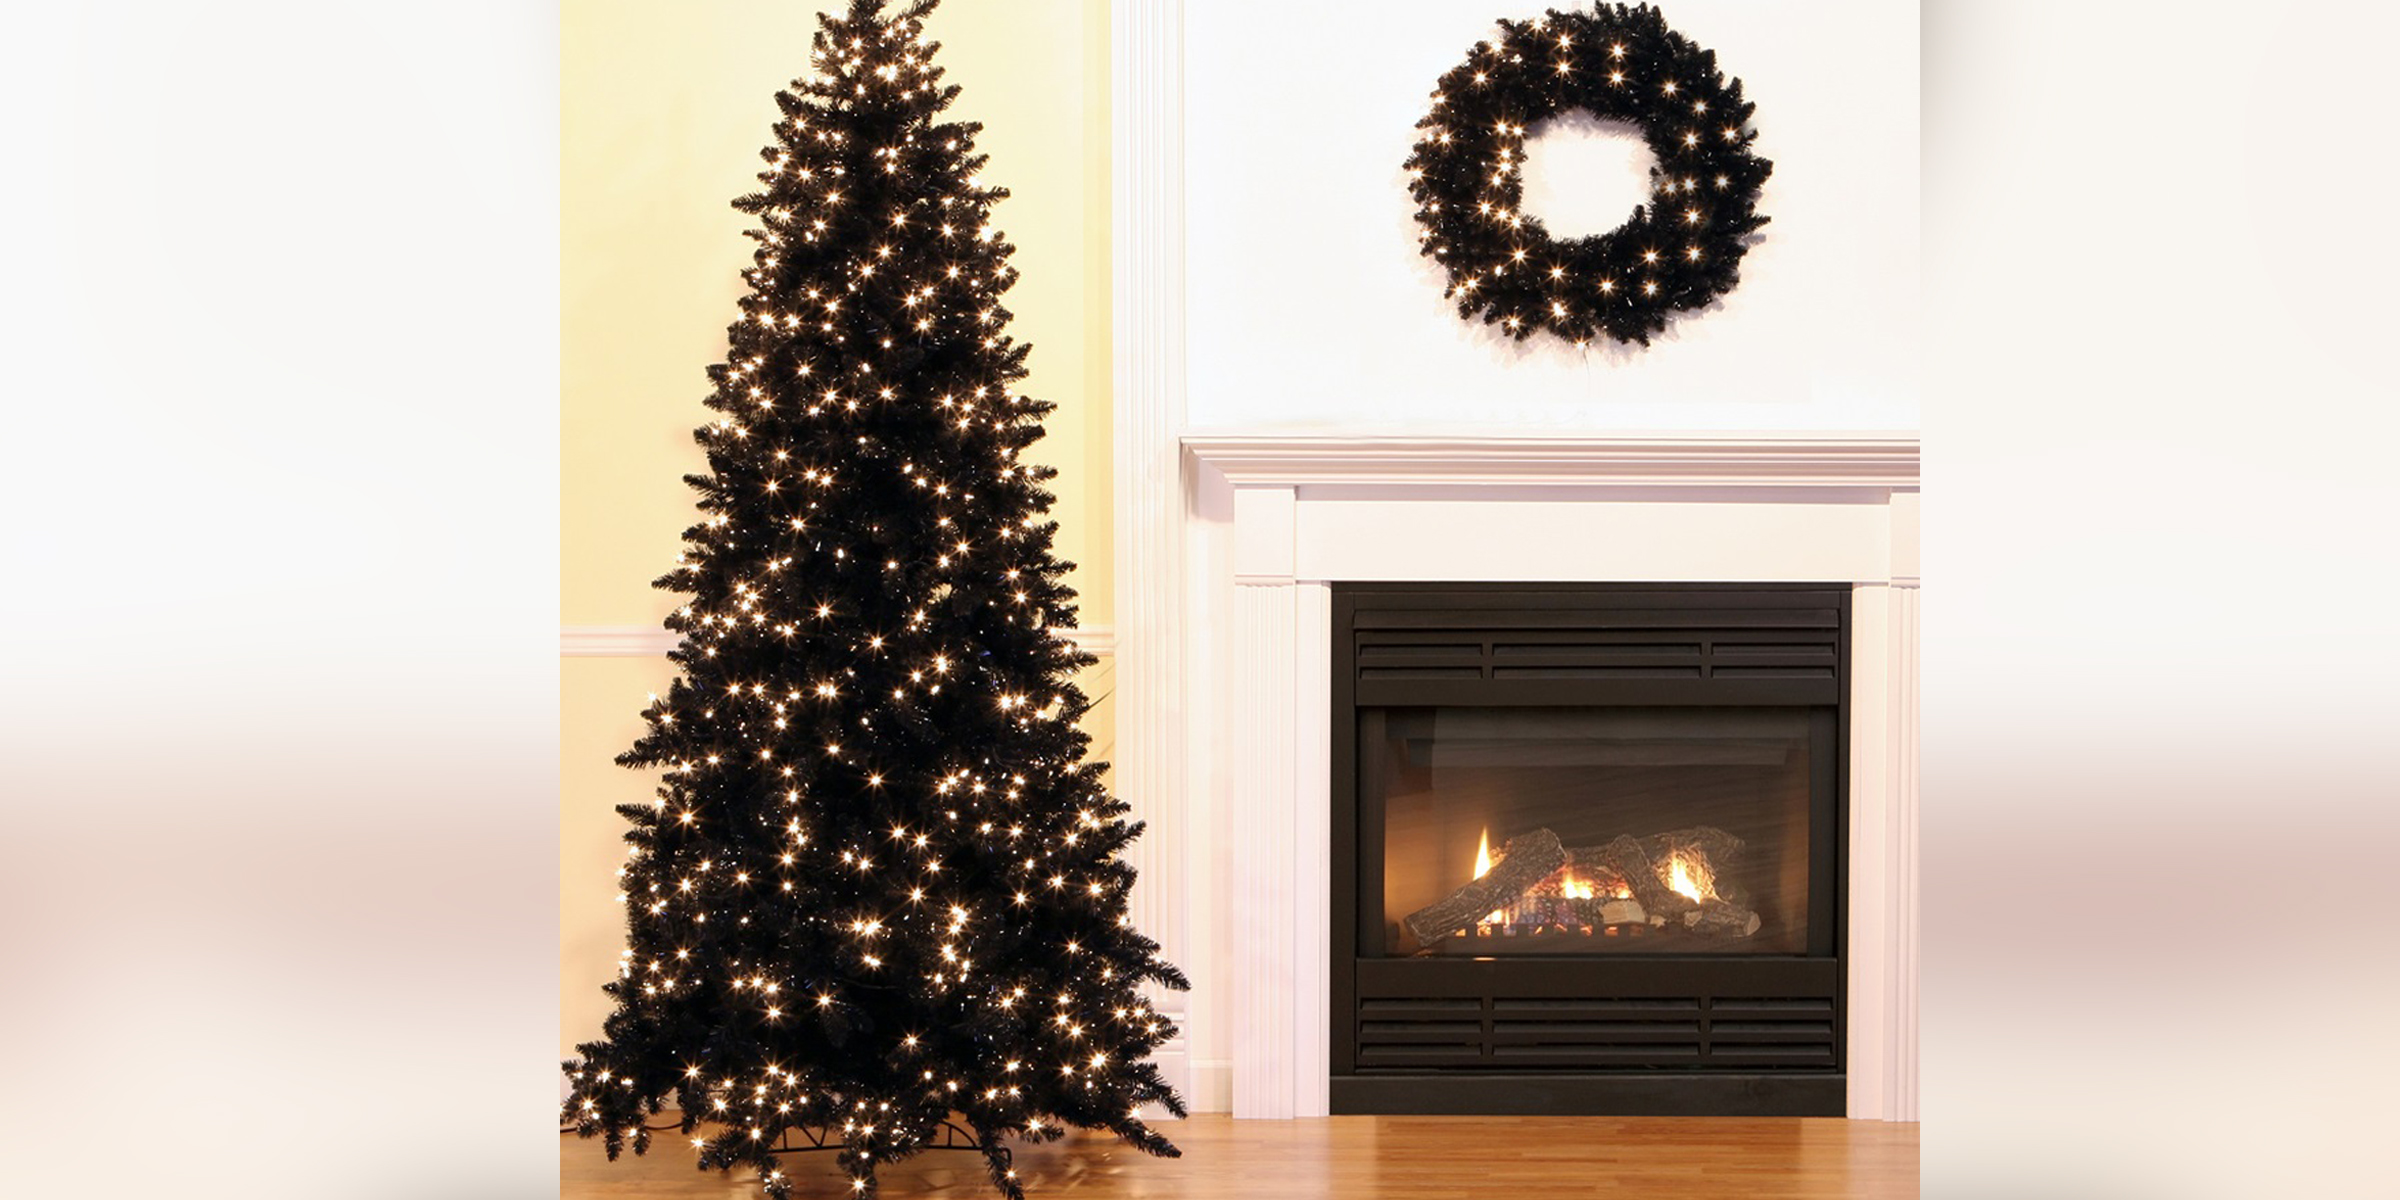 Black Christmas Trees Are The Biggest Trend In Holiday Decorations